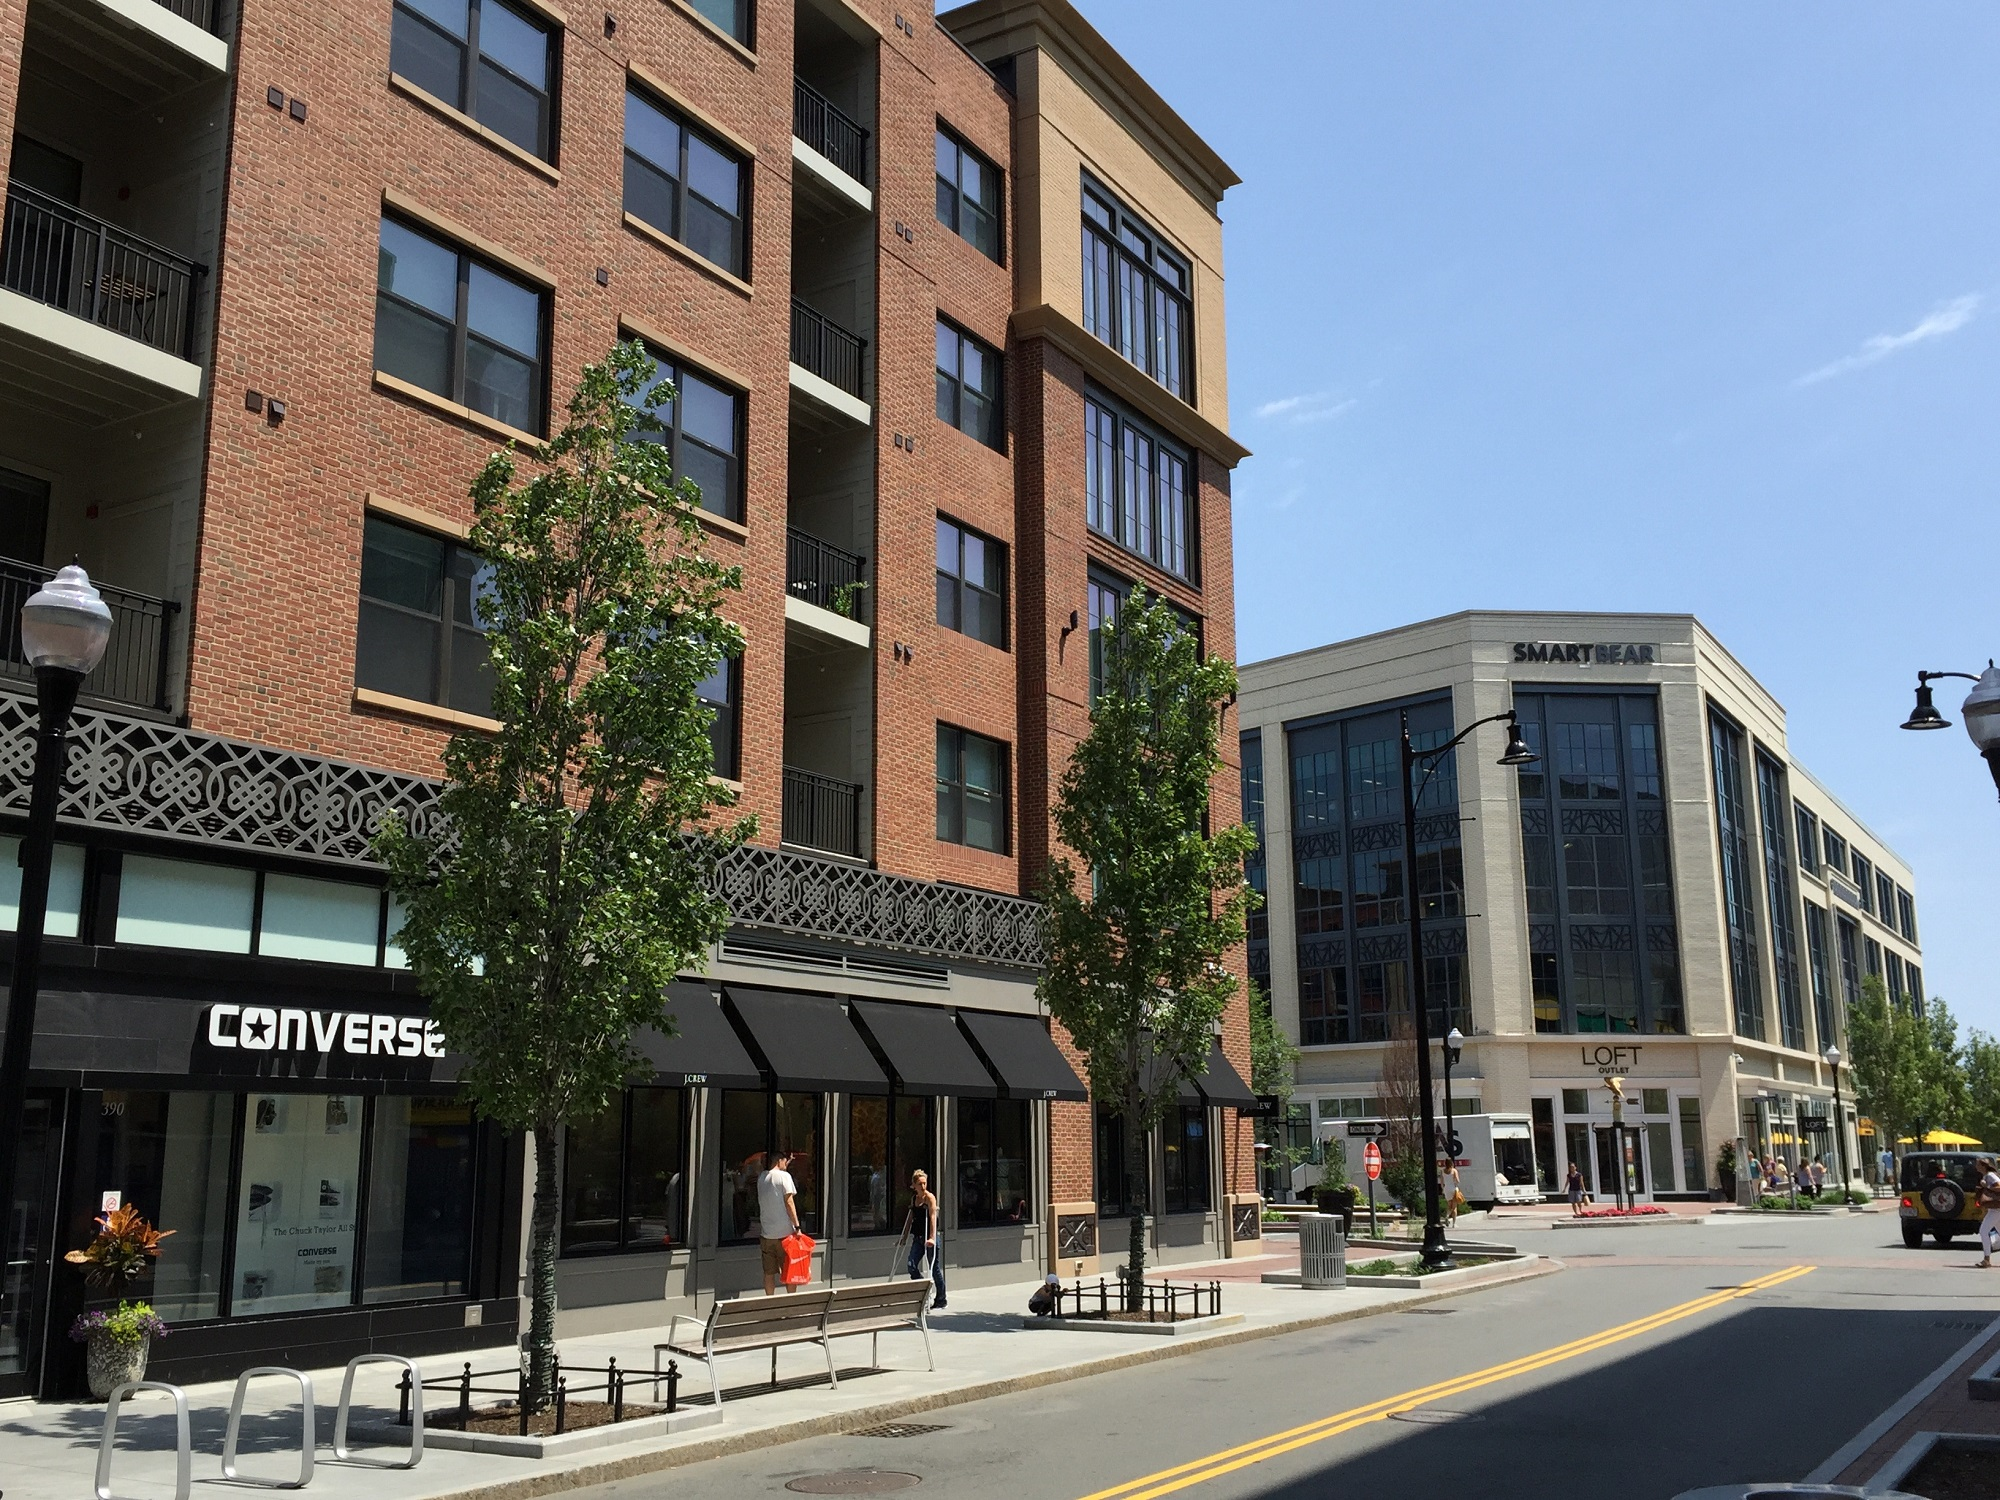 Rent Apartment Usa Retail As Multifamily Development Opportunity